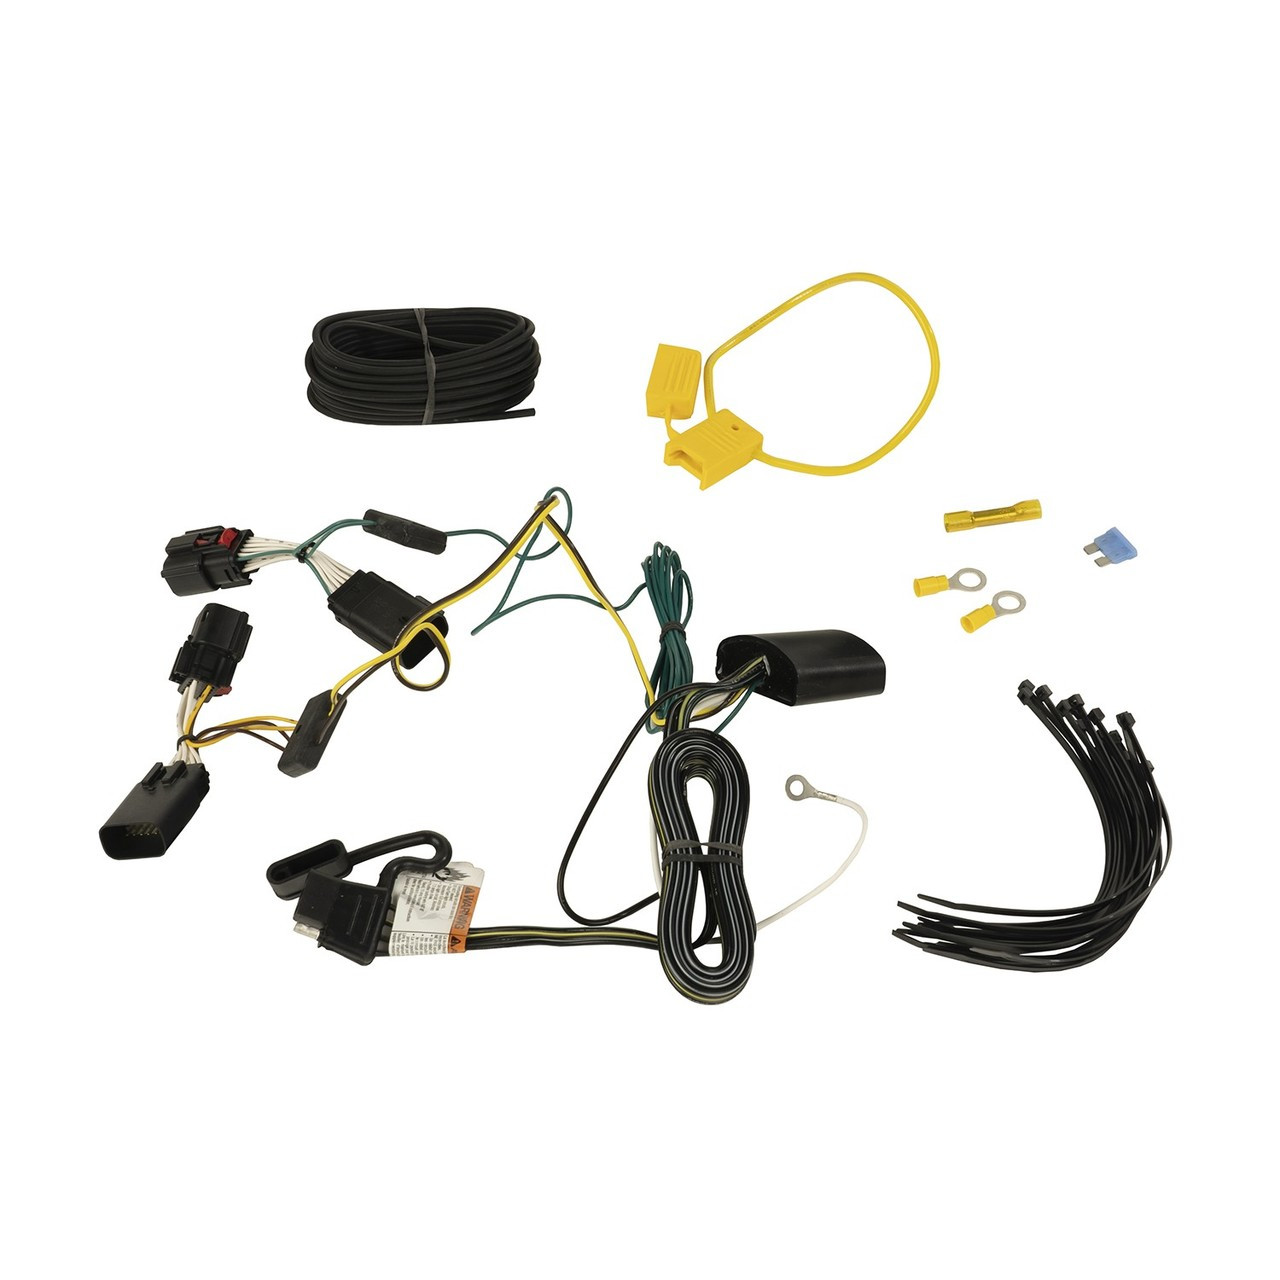 https://thejeephut com/trailer-wiring-harness-18-19-jeep-wrangler-jl/